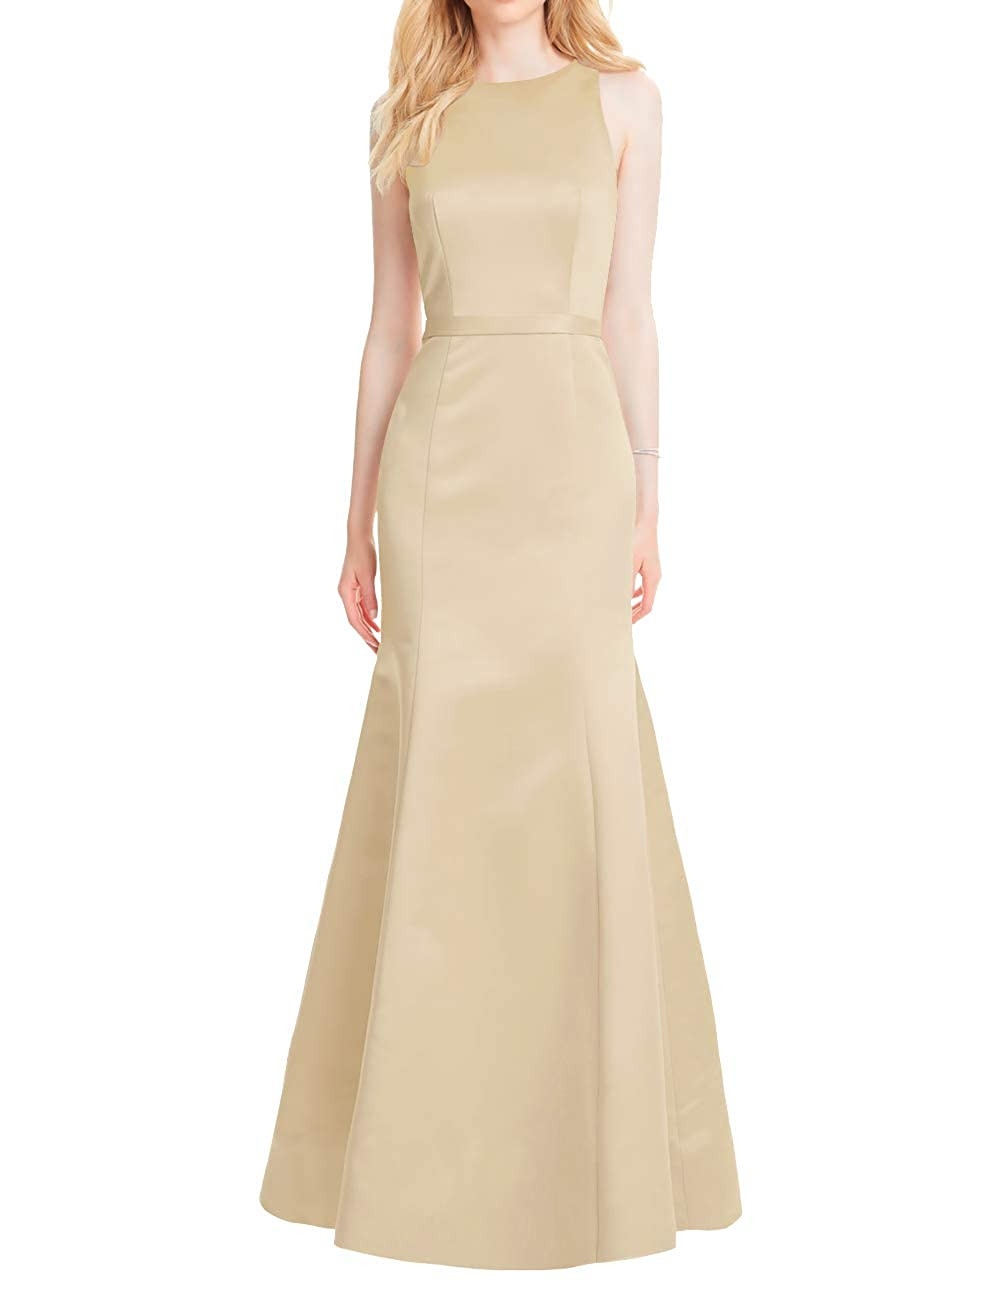 Champagne Mermaid Prom Dresses Long Satin Evening Formal Gowns Backless Maxi Party Dress